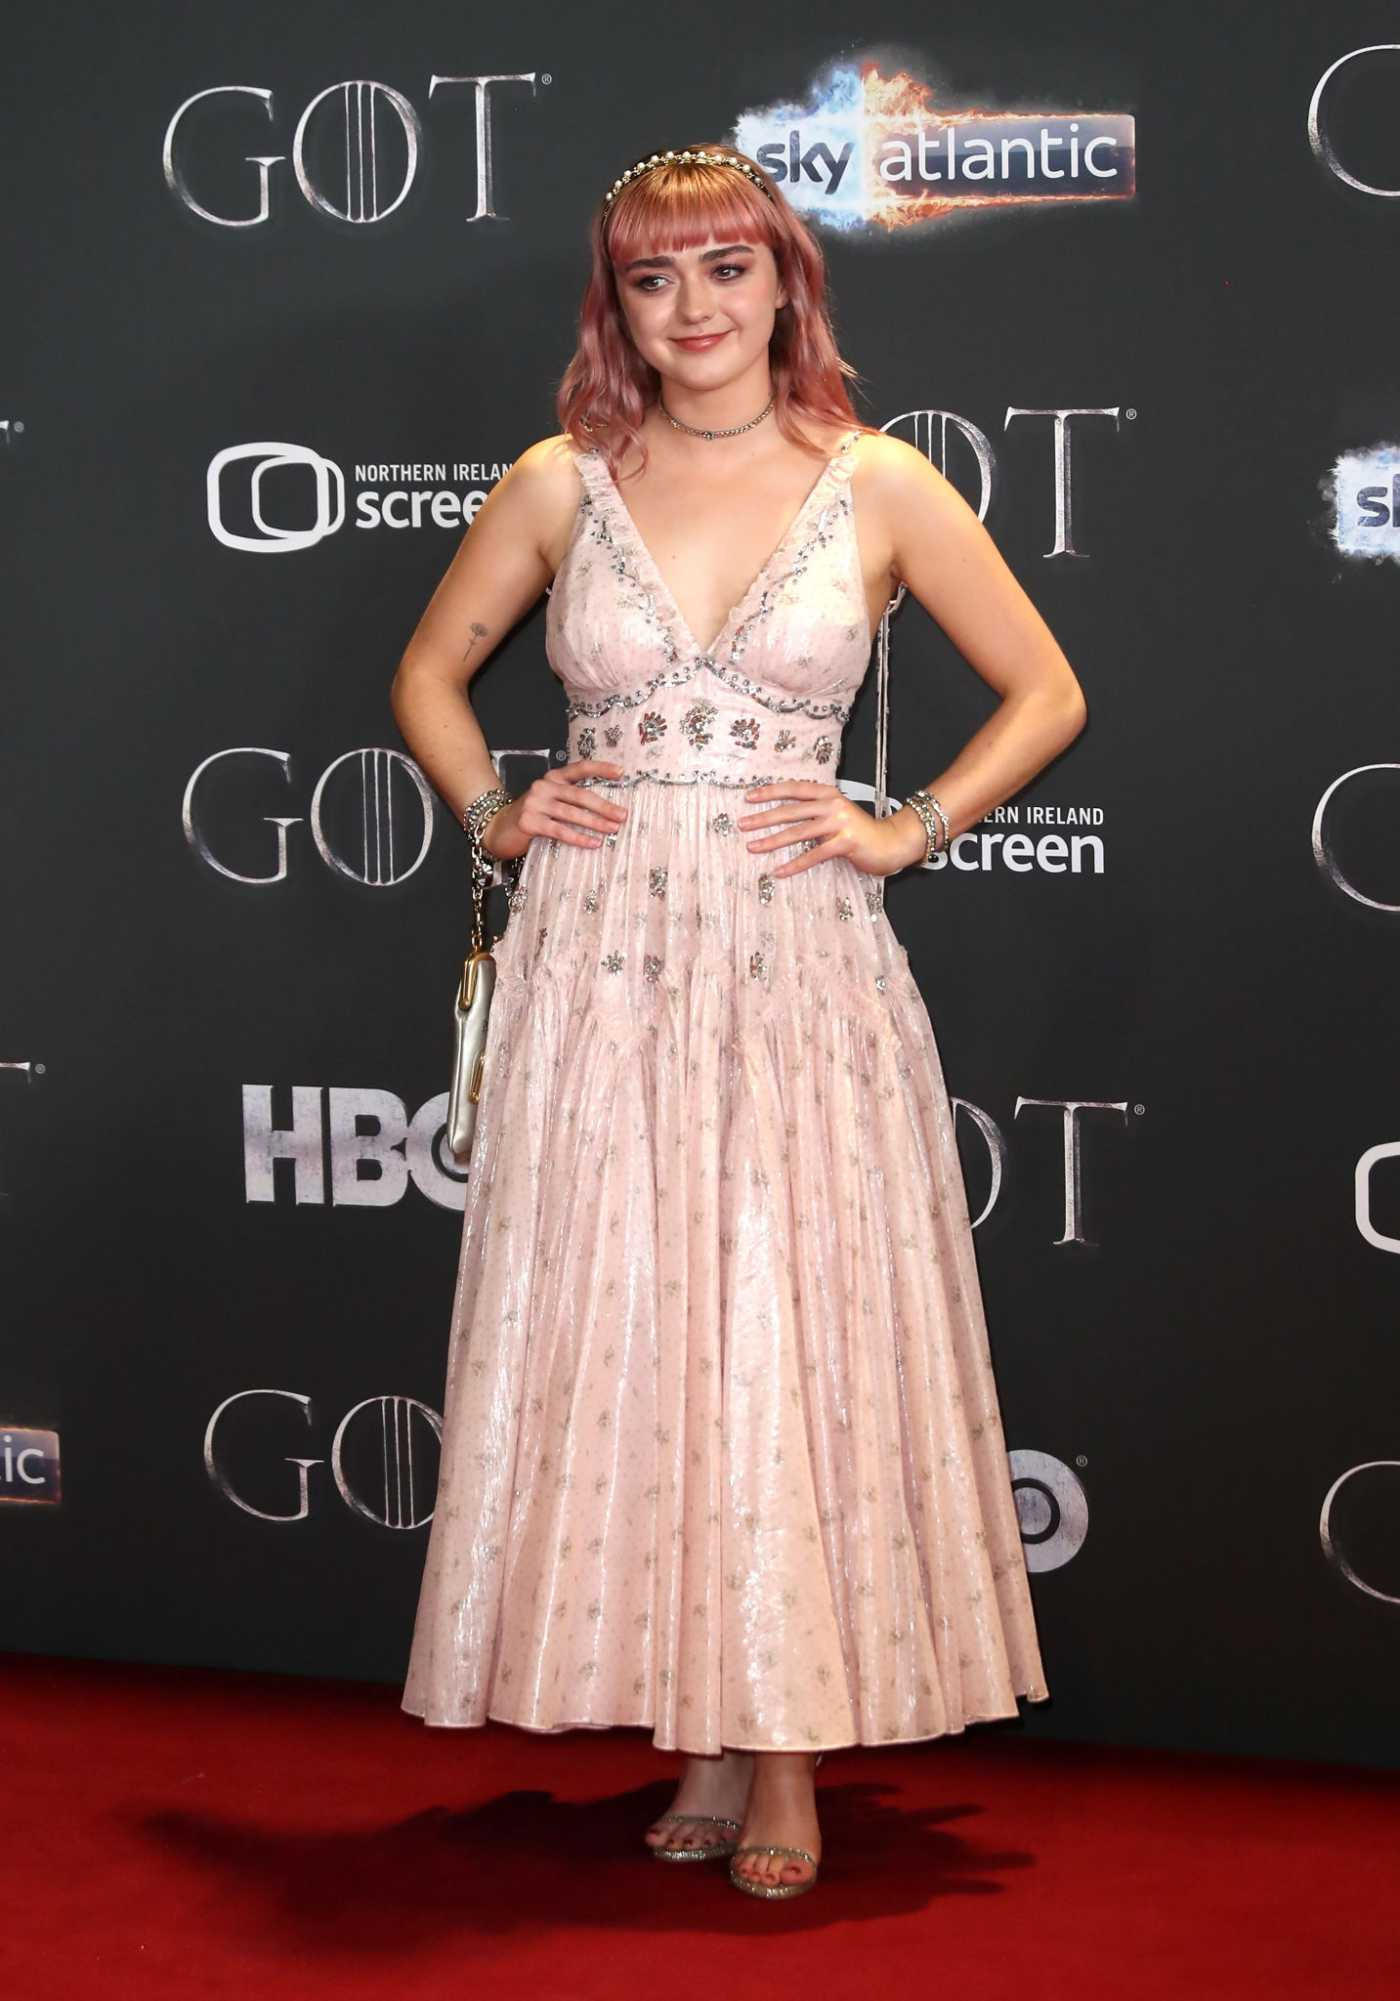 Maisie Williams Attends Game of Thrones Season 8 Premiere in Belfast 04/12/2019